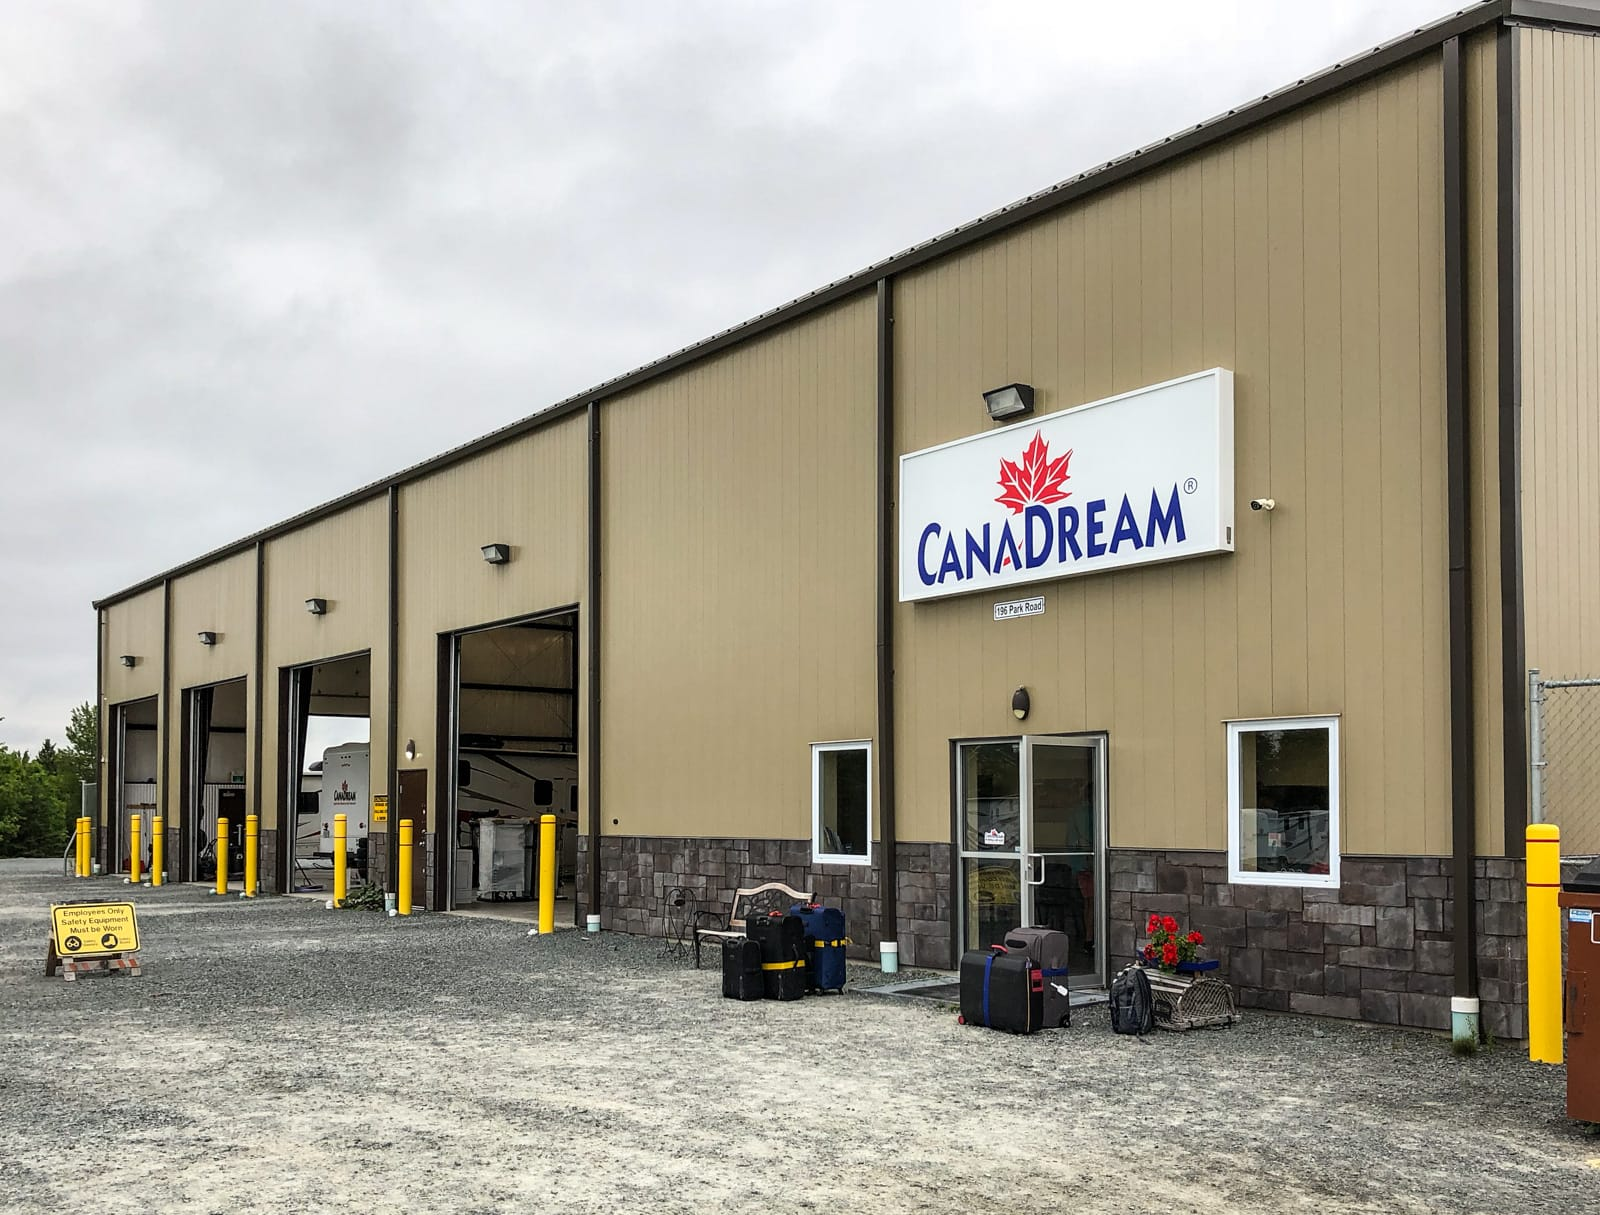 CanaDream-Station in Halifax (Elmsdale)